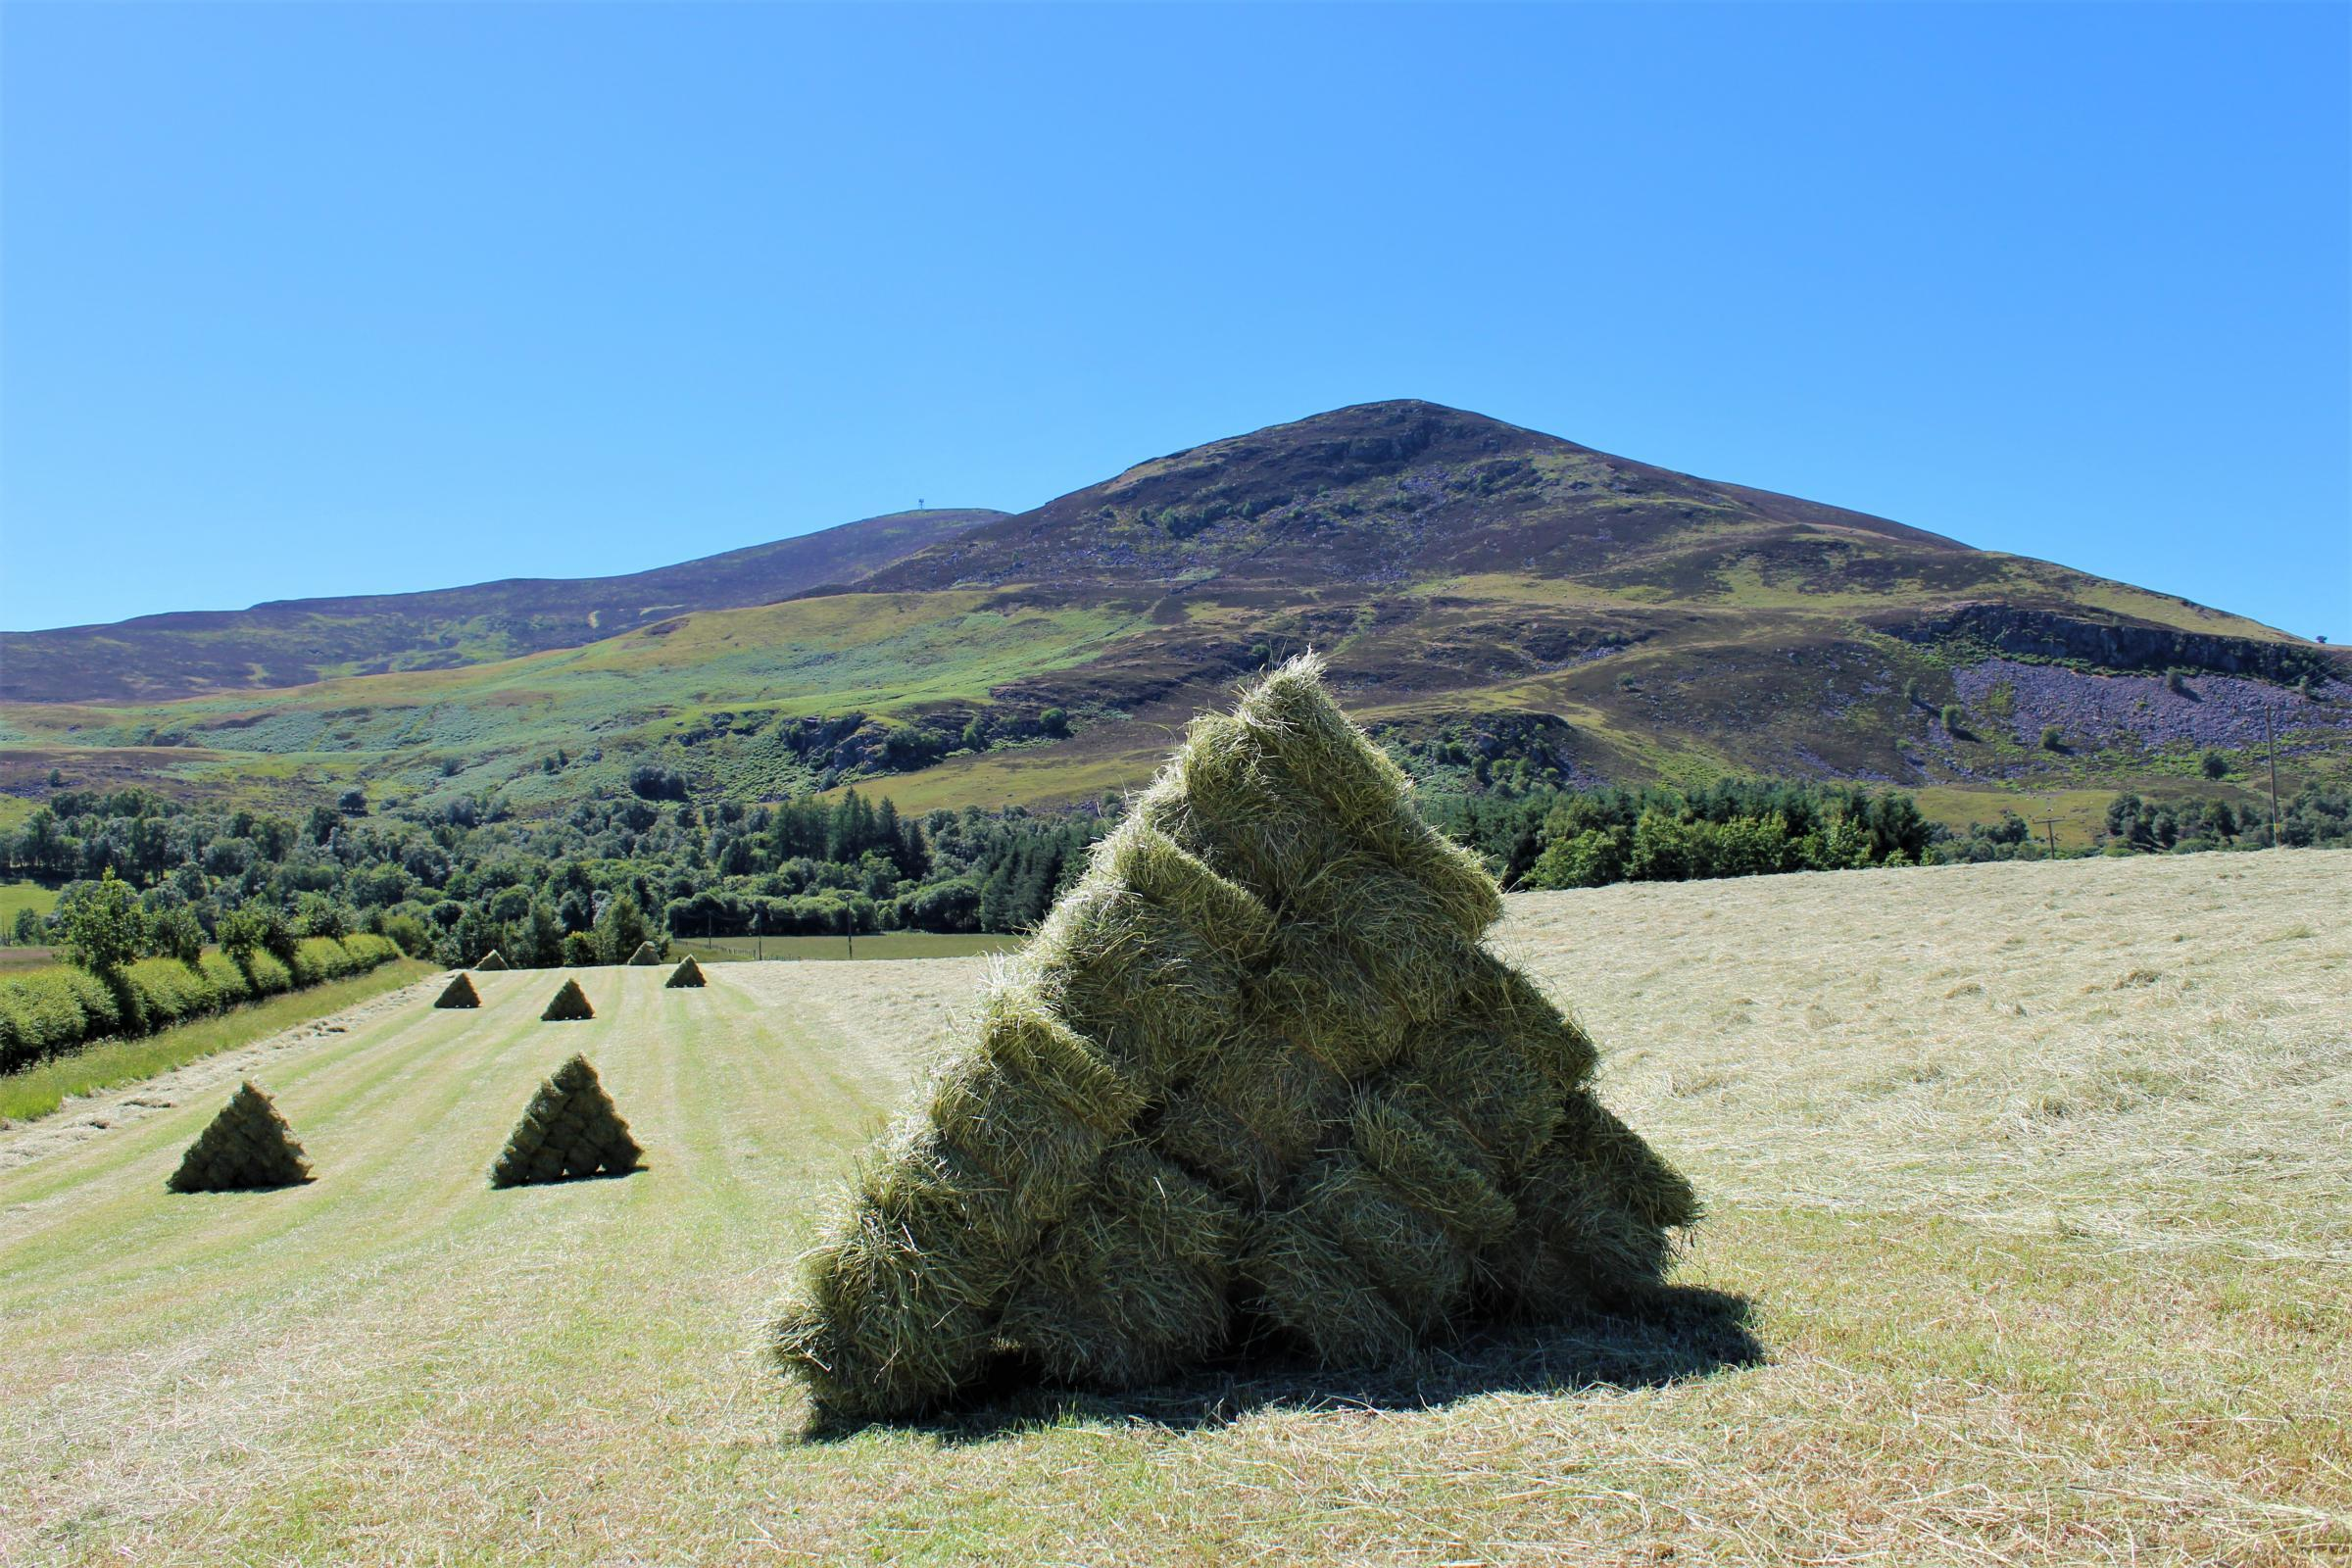 FOR THE first time in a very long time, hay was being made in Glenisla, Perthshire this week